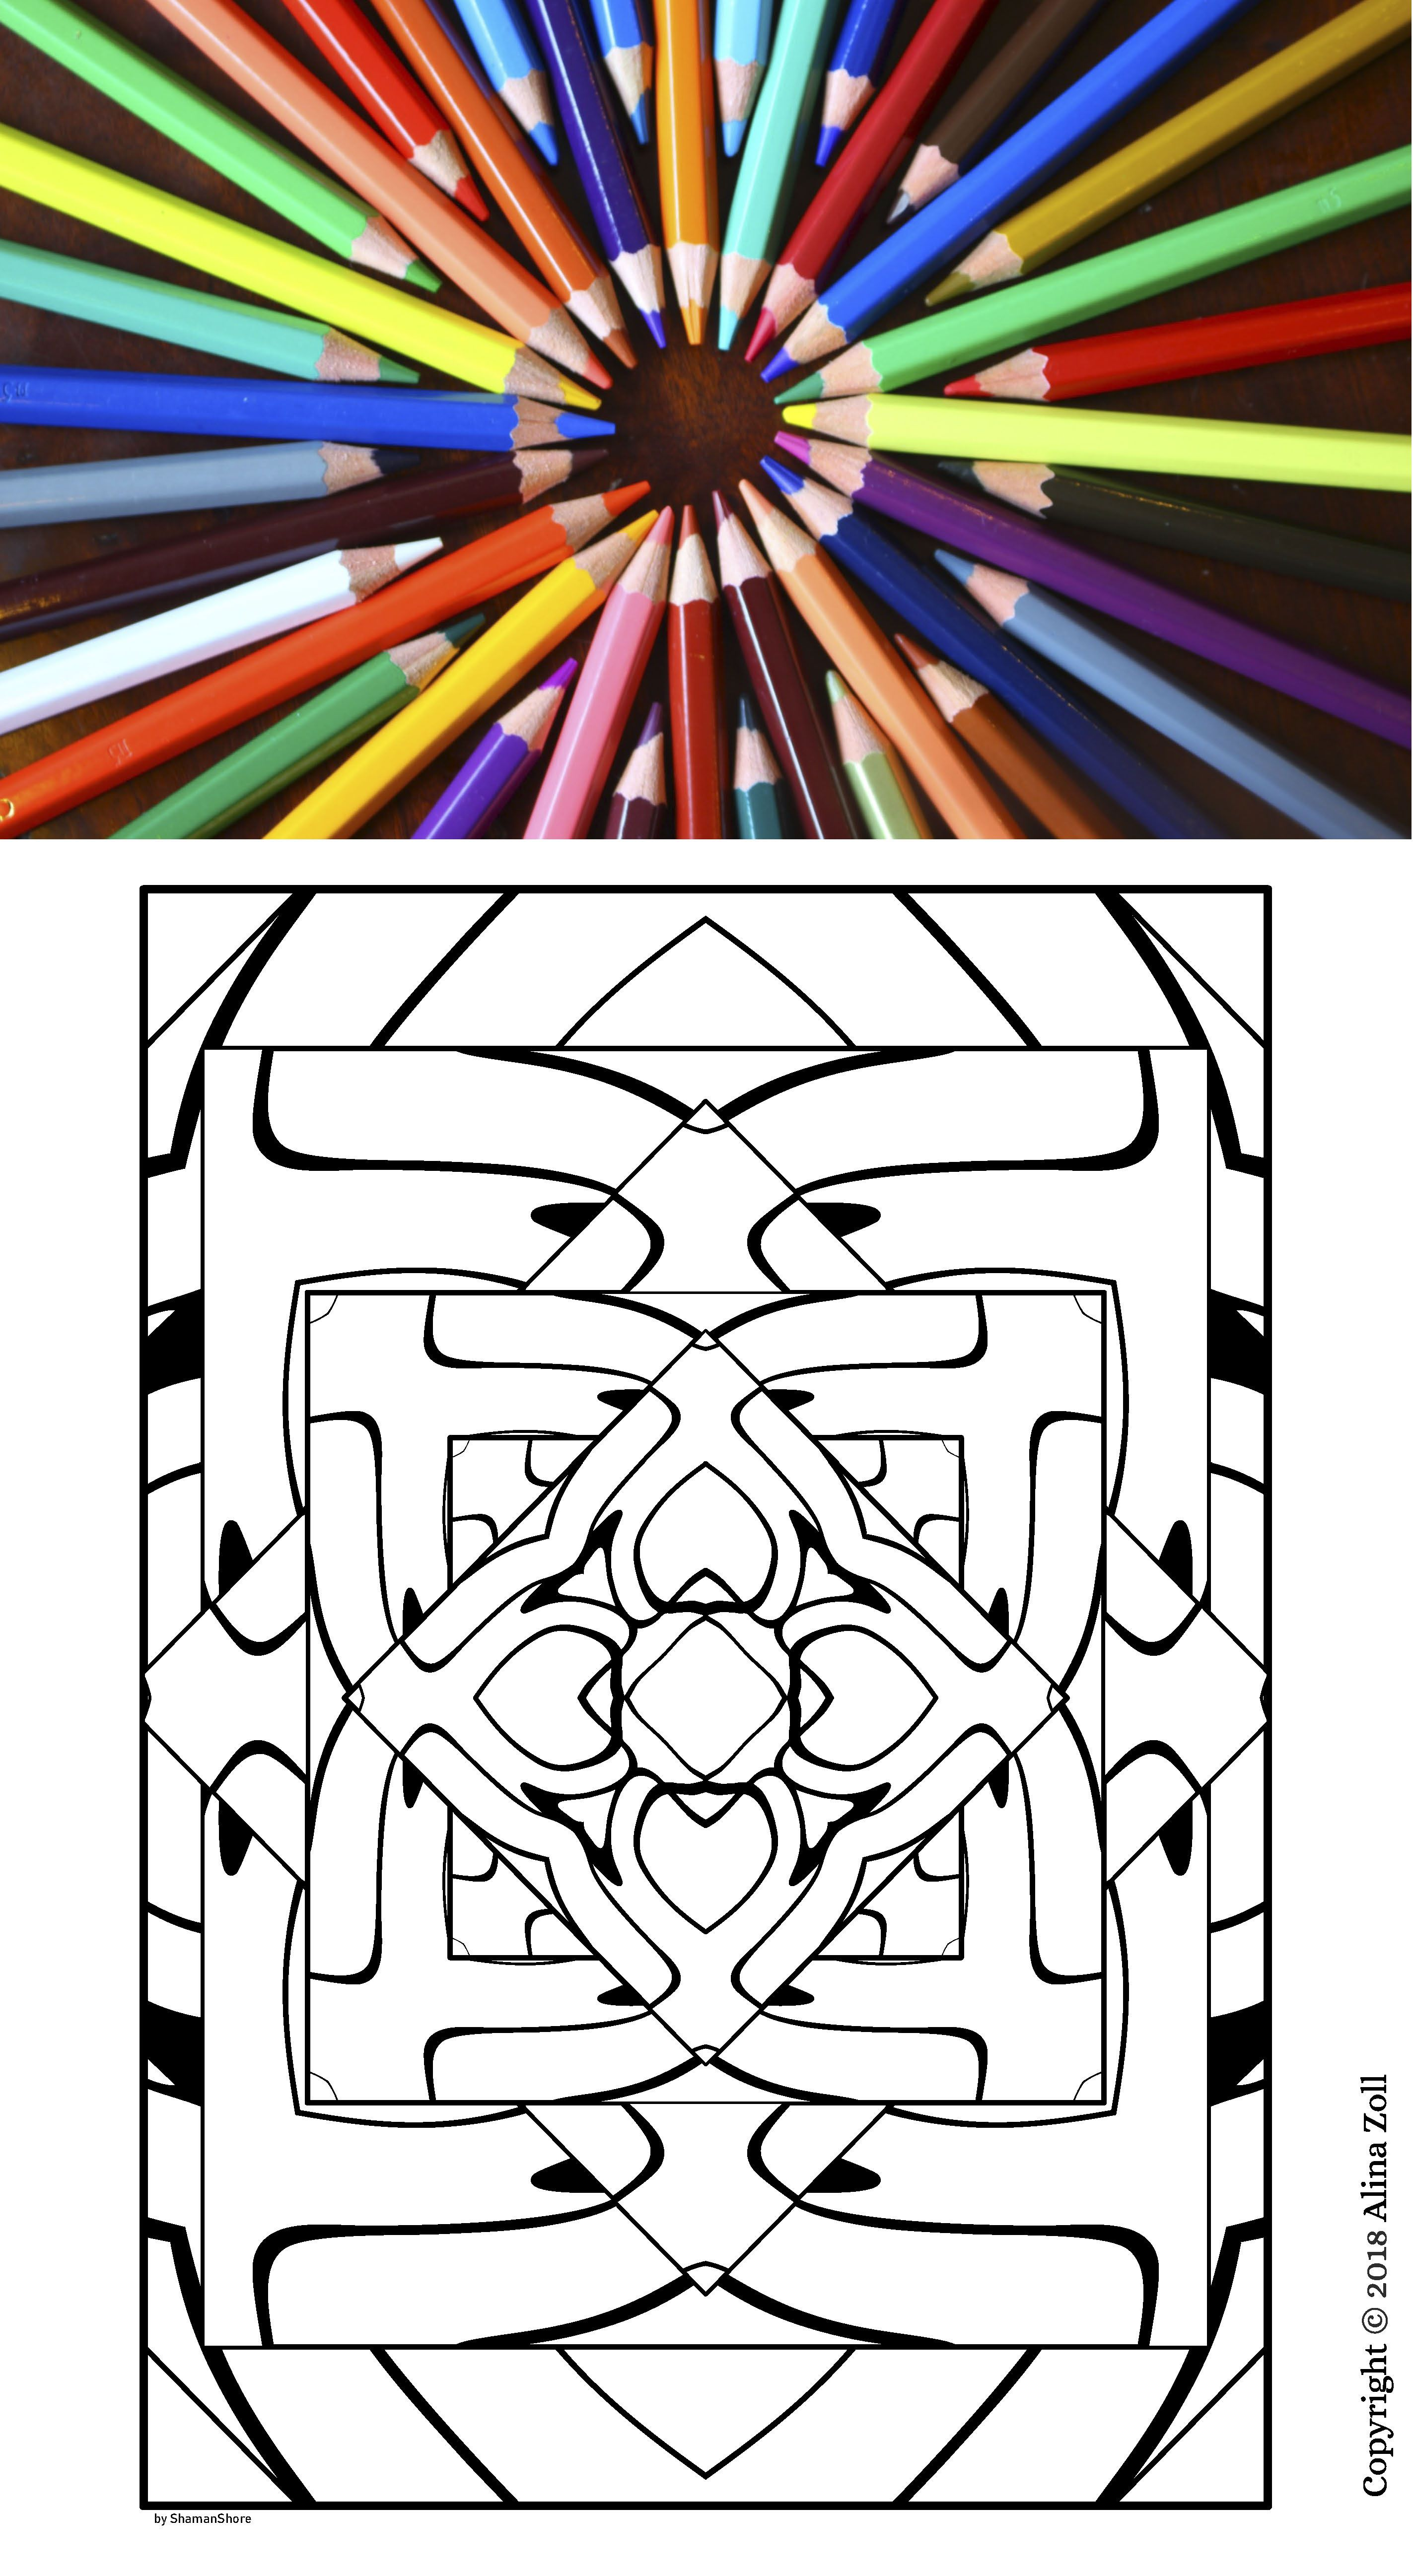 Adult Coloring Book Pdf 20 Adult Coloring Pages Printable Abstract